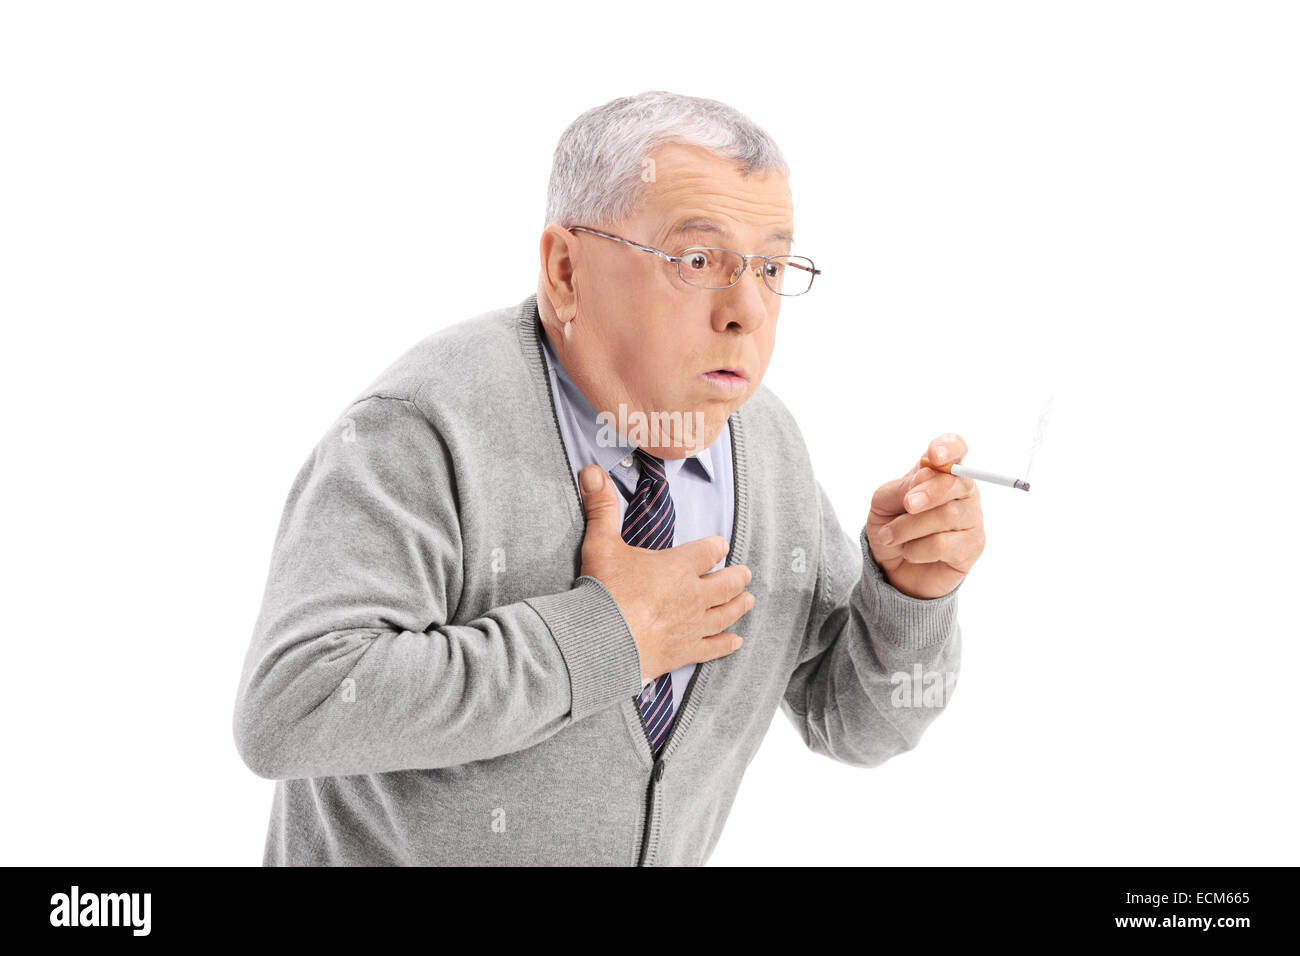 Senior man choking from the smoke of a cigarette isolated on white background - Stock Image